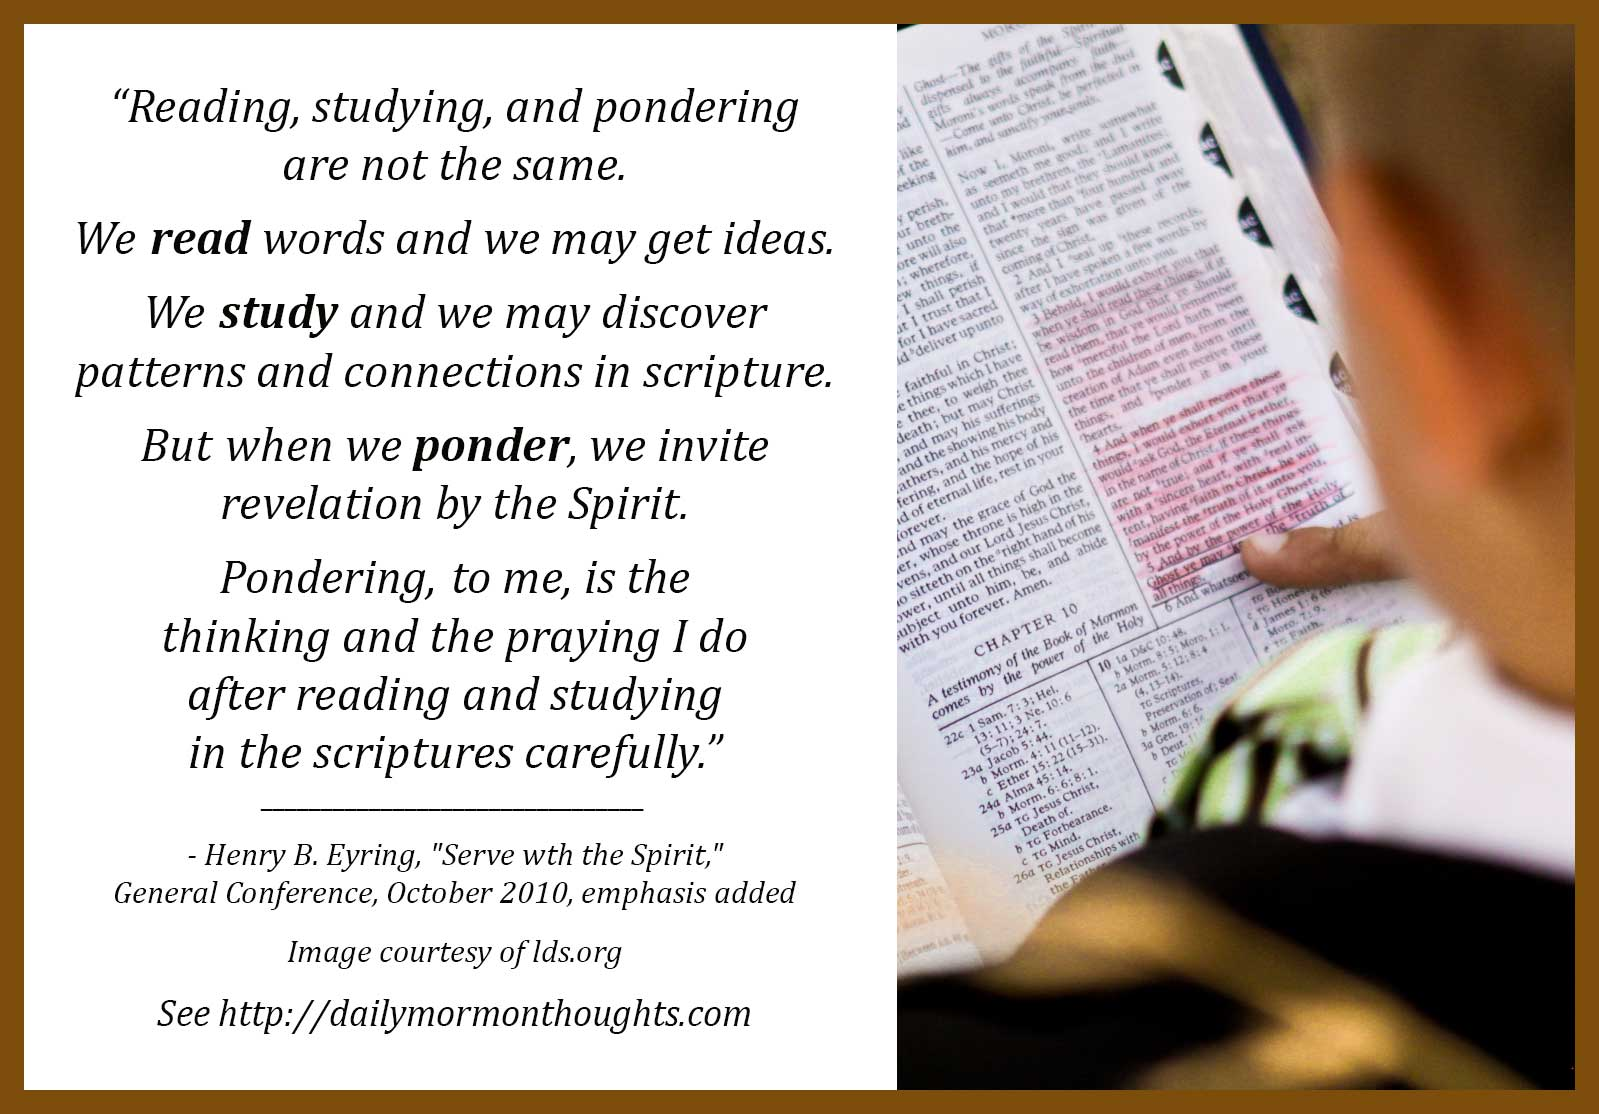 Daily thought from lds leaders president henry b eyring on reading reading has limited value unless it is enhanced by the activities of studying and pondering in the studying we begin to discover patterns and negle Image collections